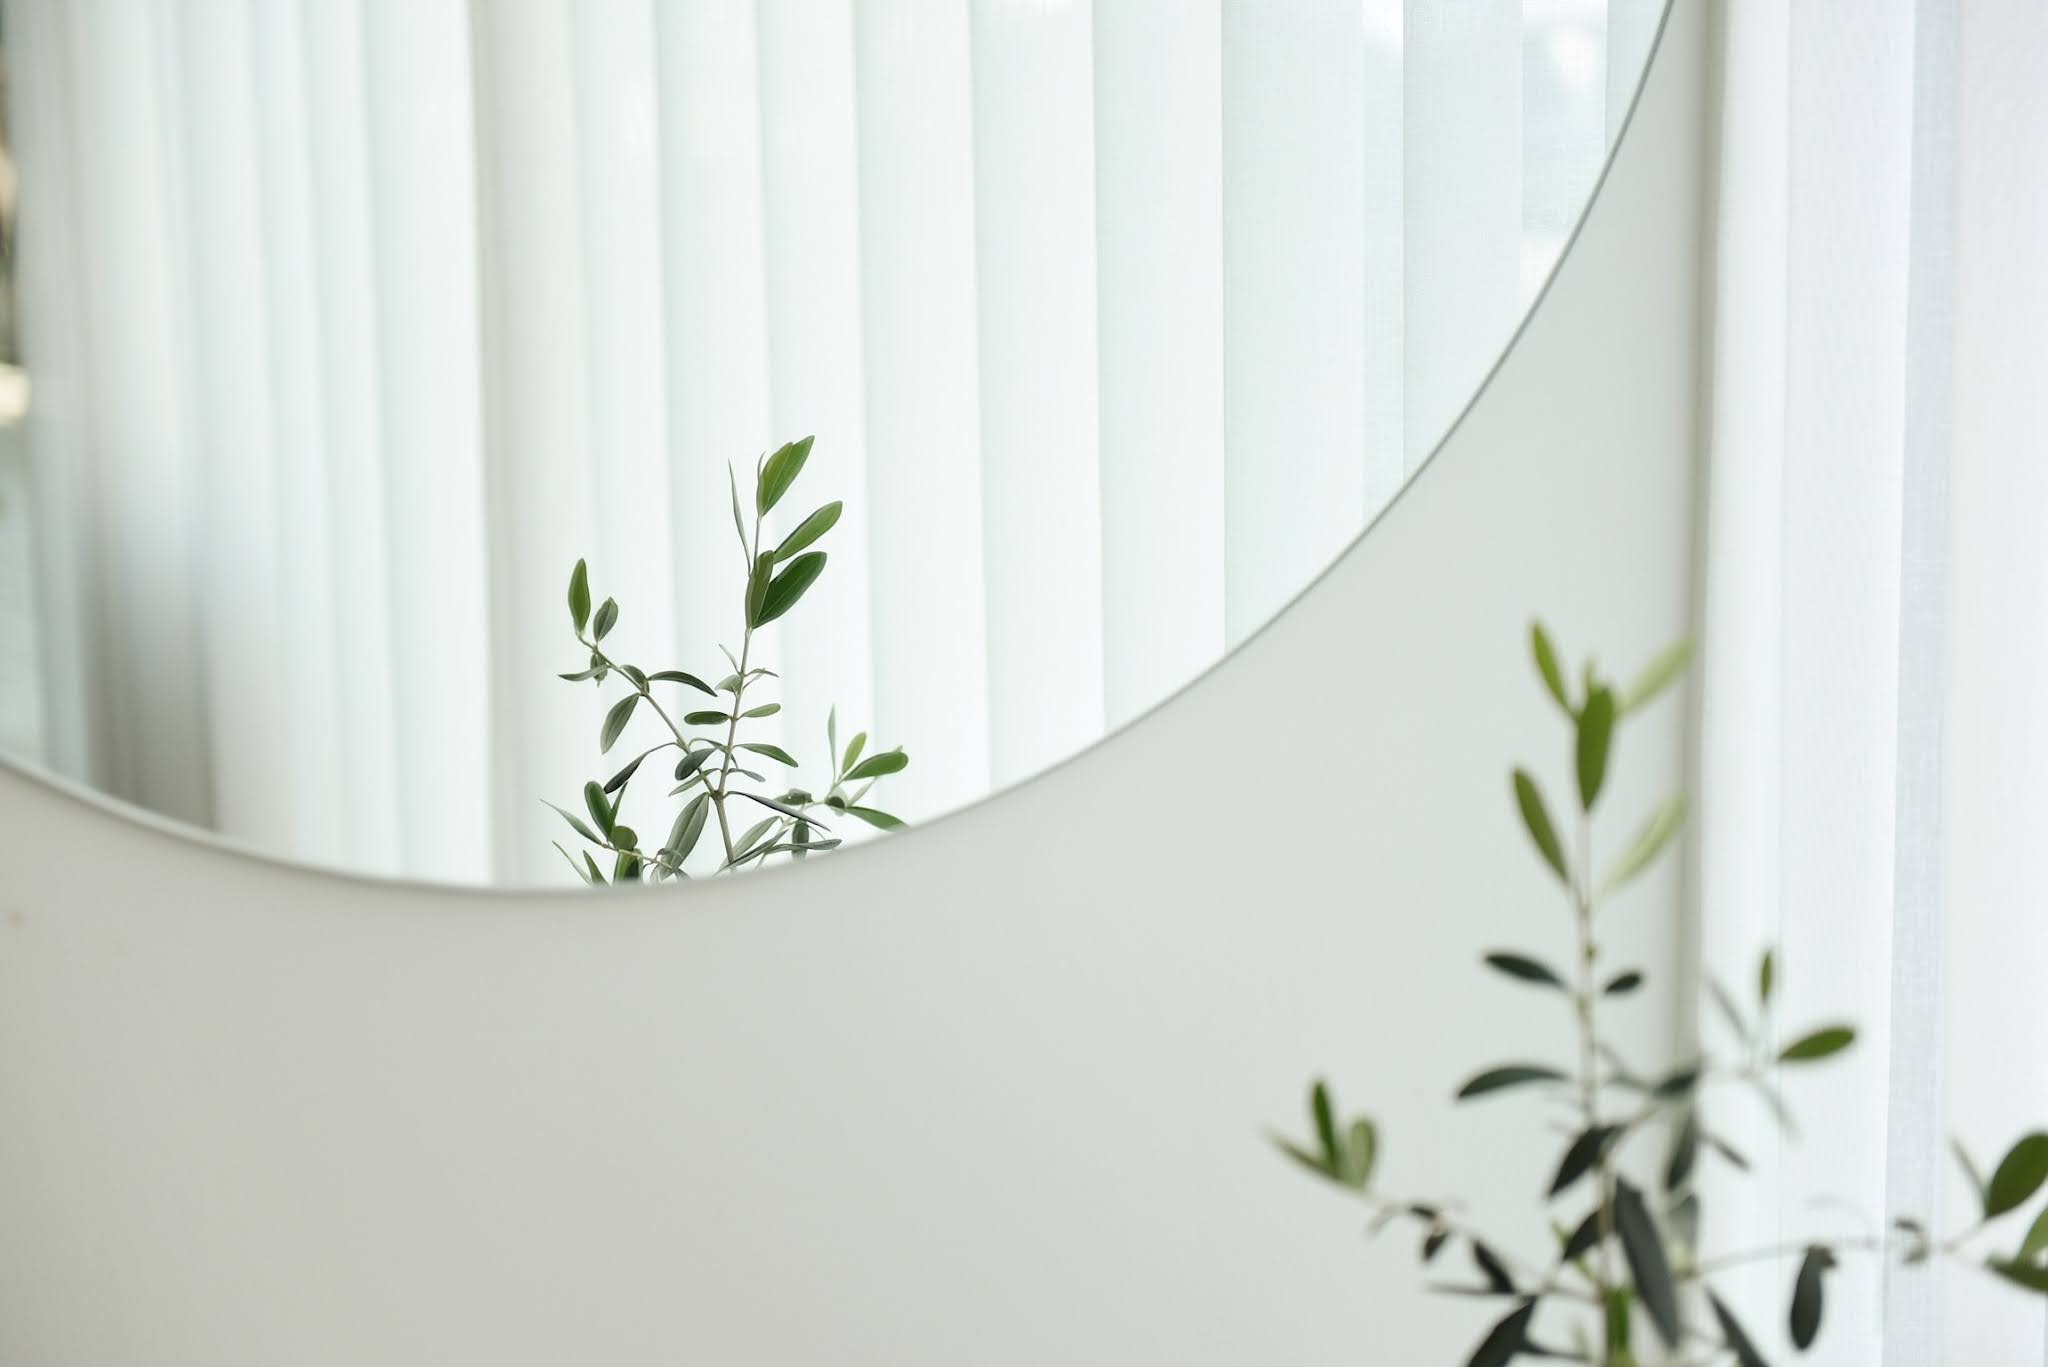 Image of a mirror https://unsplash.com/@by_syeoni